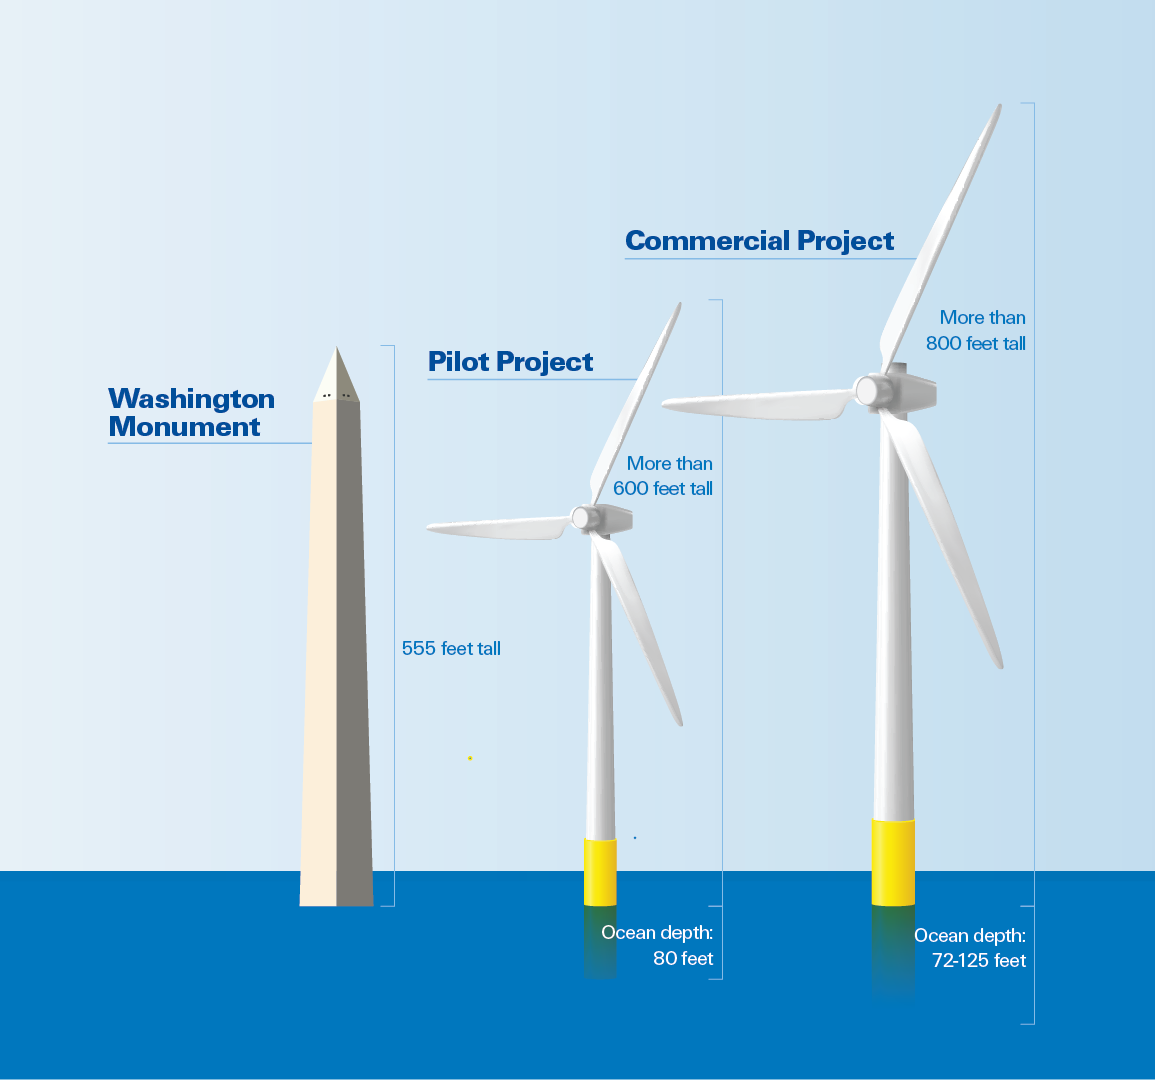 Height of Phase I and Phase II Coastal Virginia Offshore windmills compared to the Washington Monument